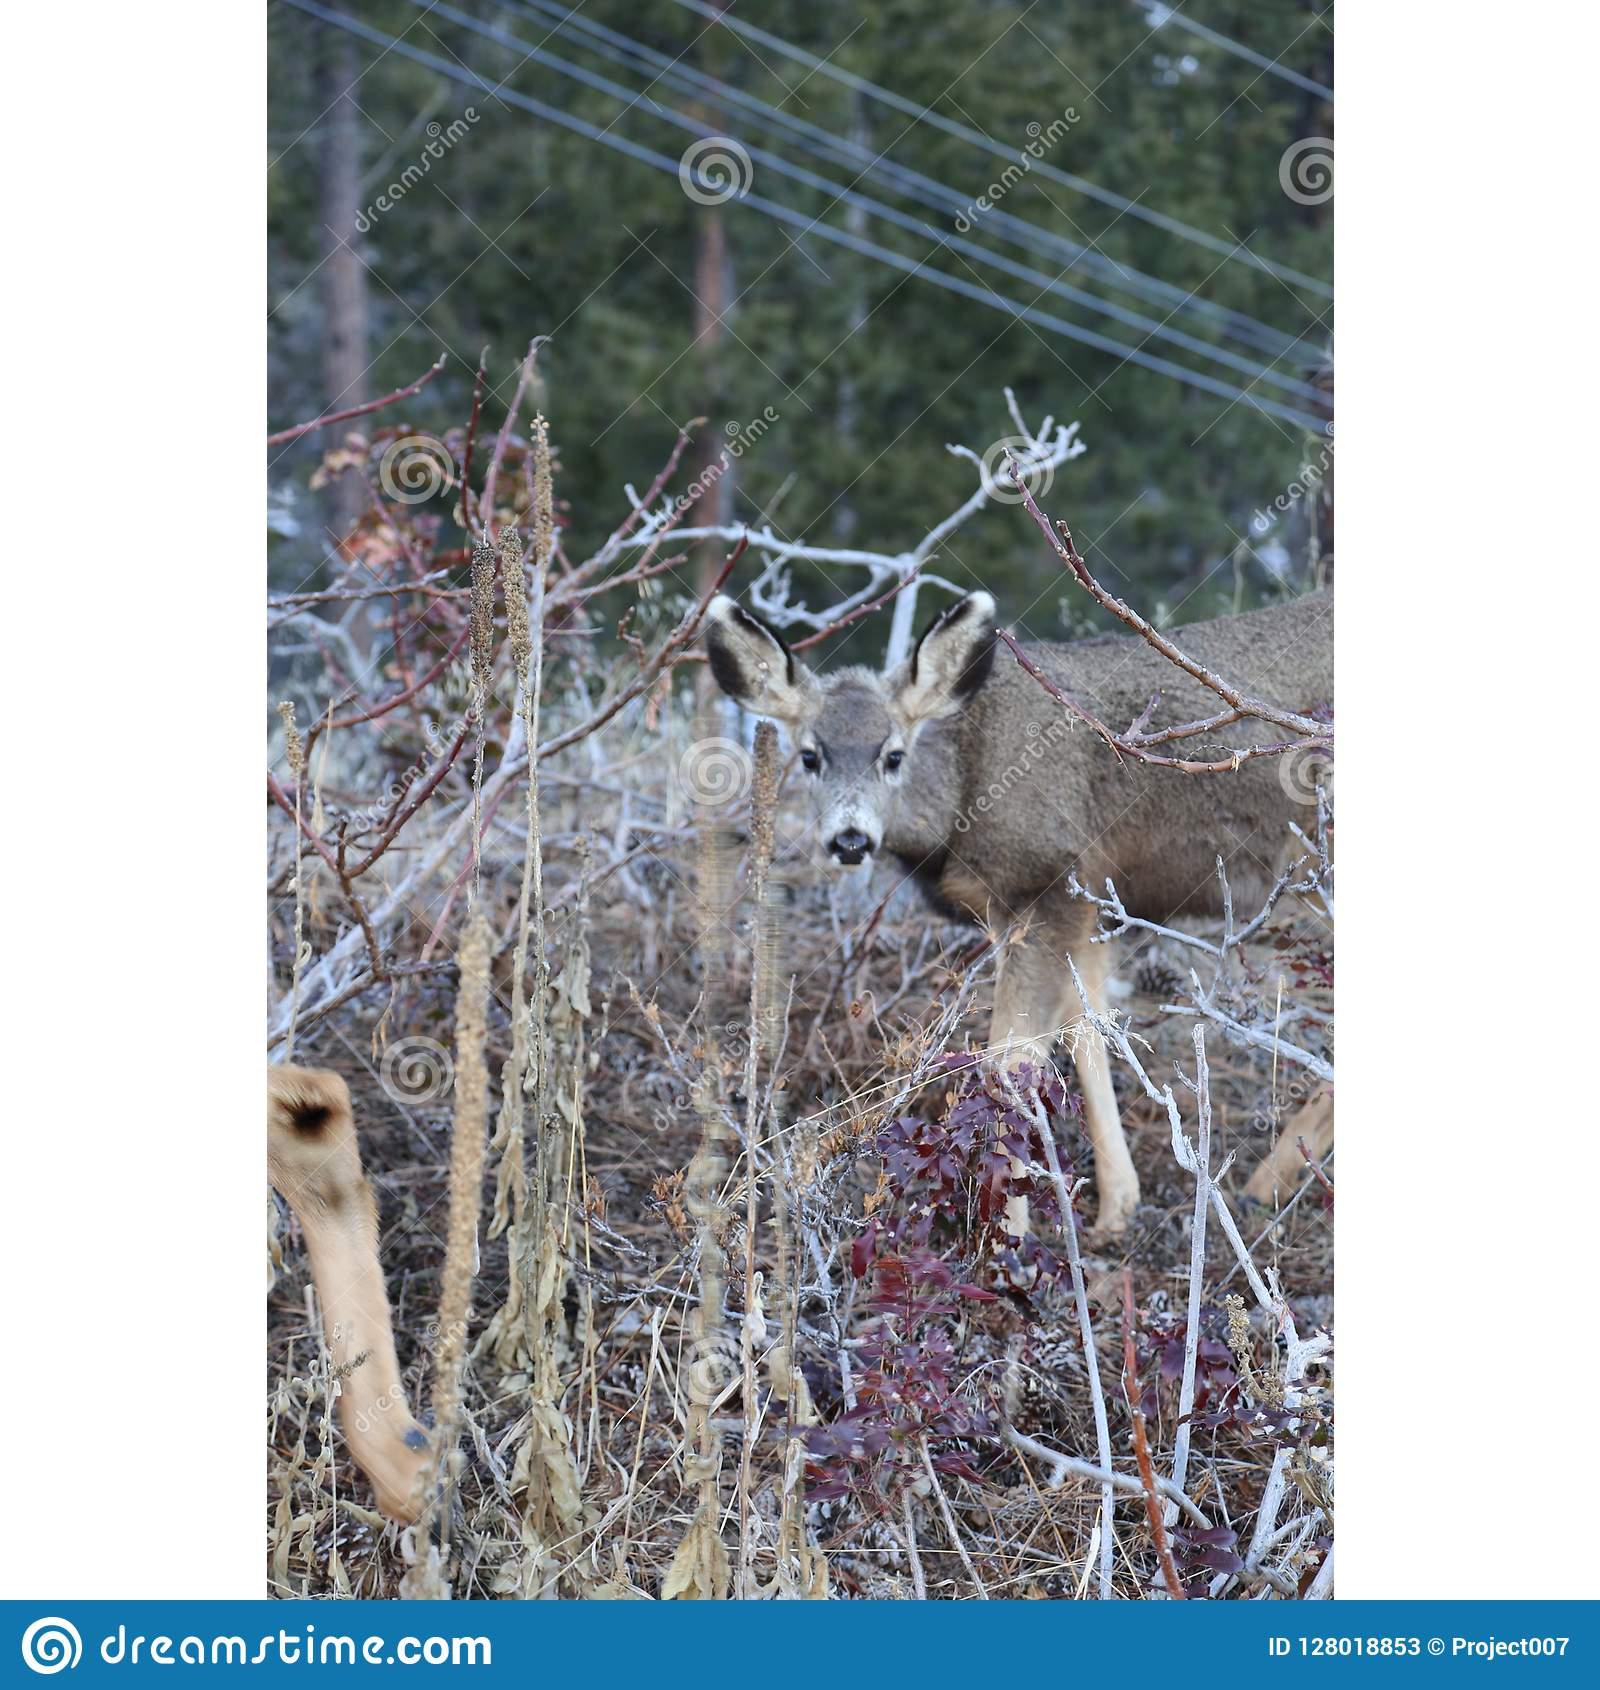 Hunting season- Deer and Elk subjects are popular for hunting or wilderness billboards or magazines.